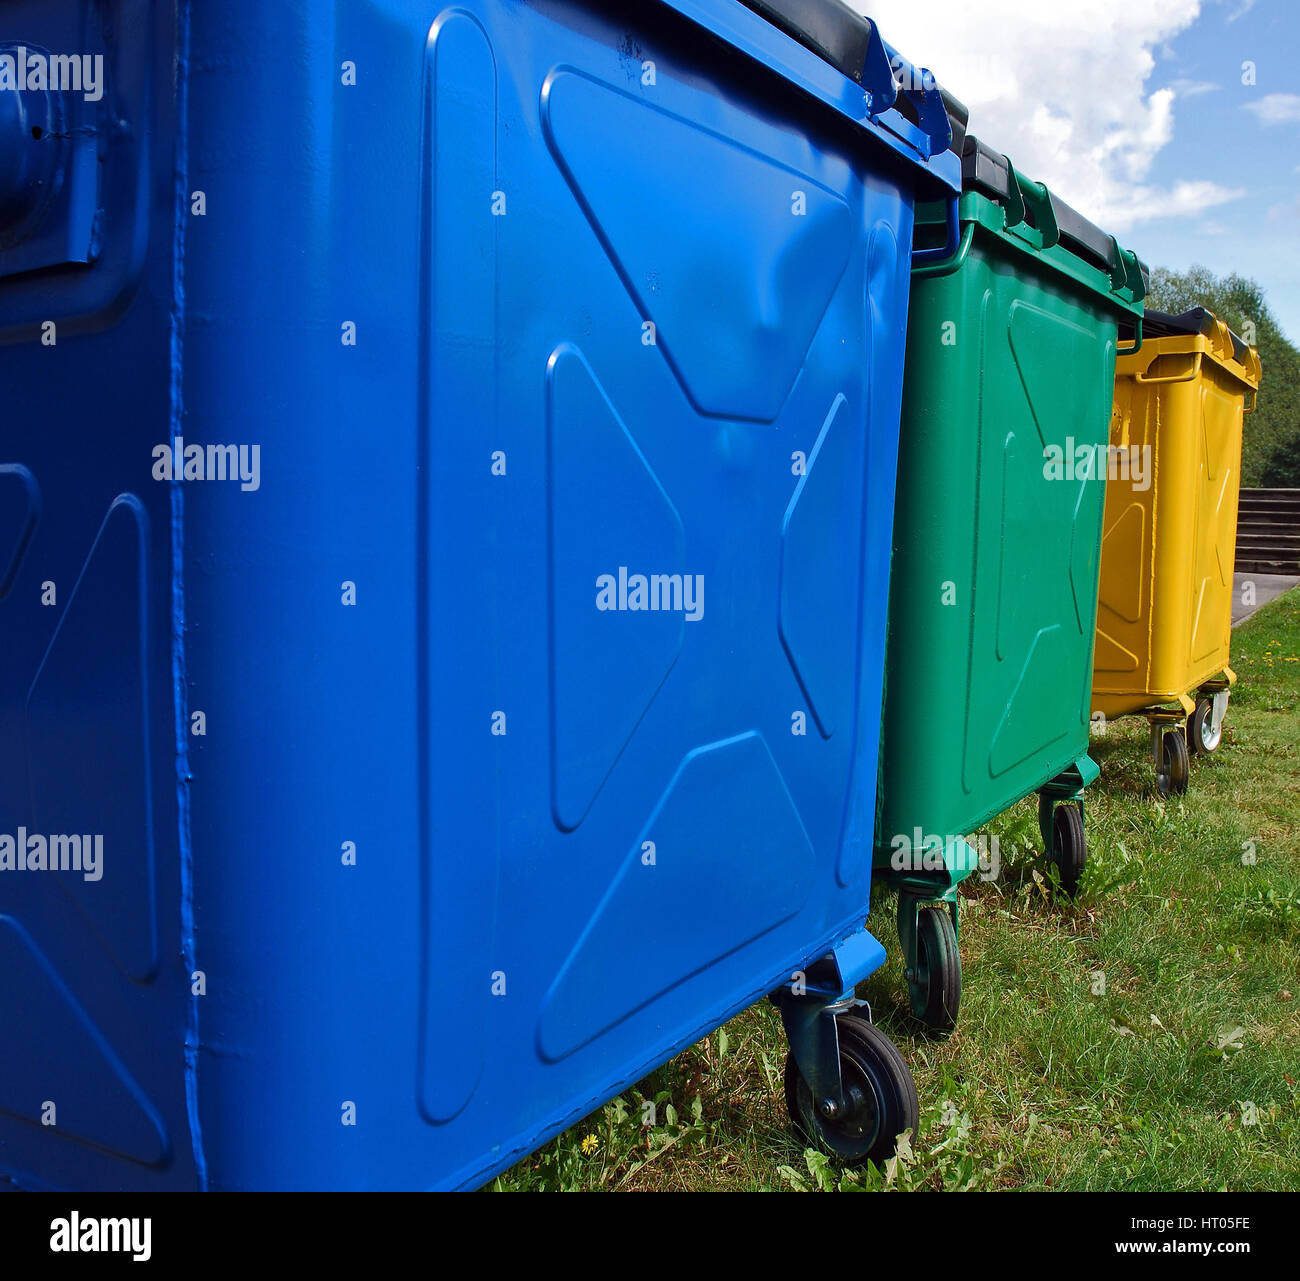 Three colour recycling trash bins for ecological waste sorting - Stock Image